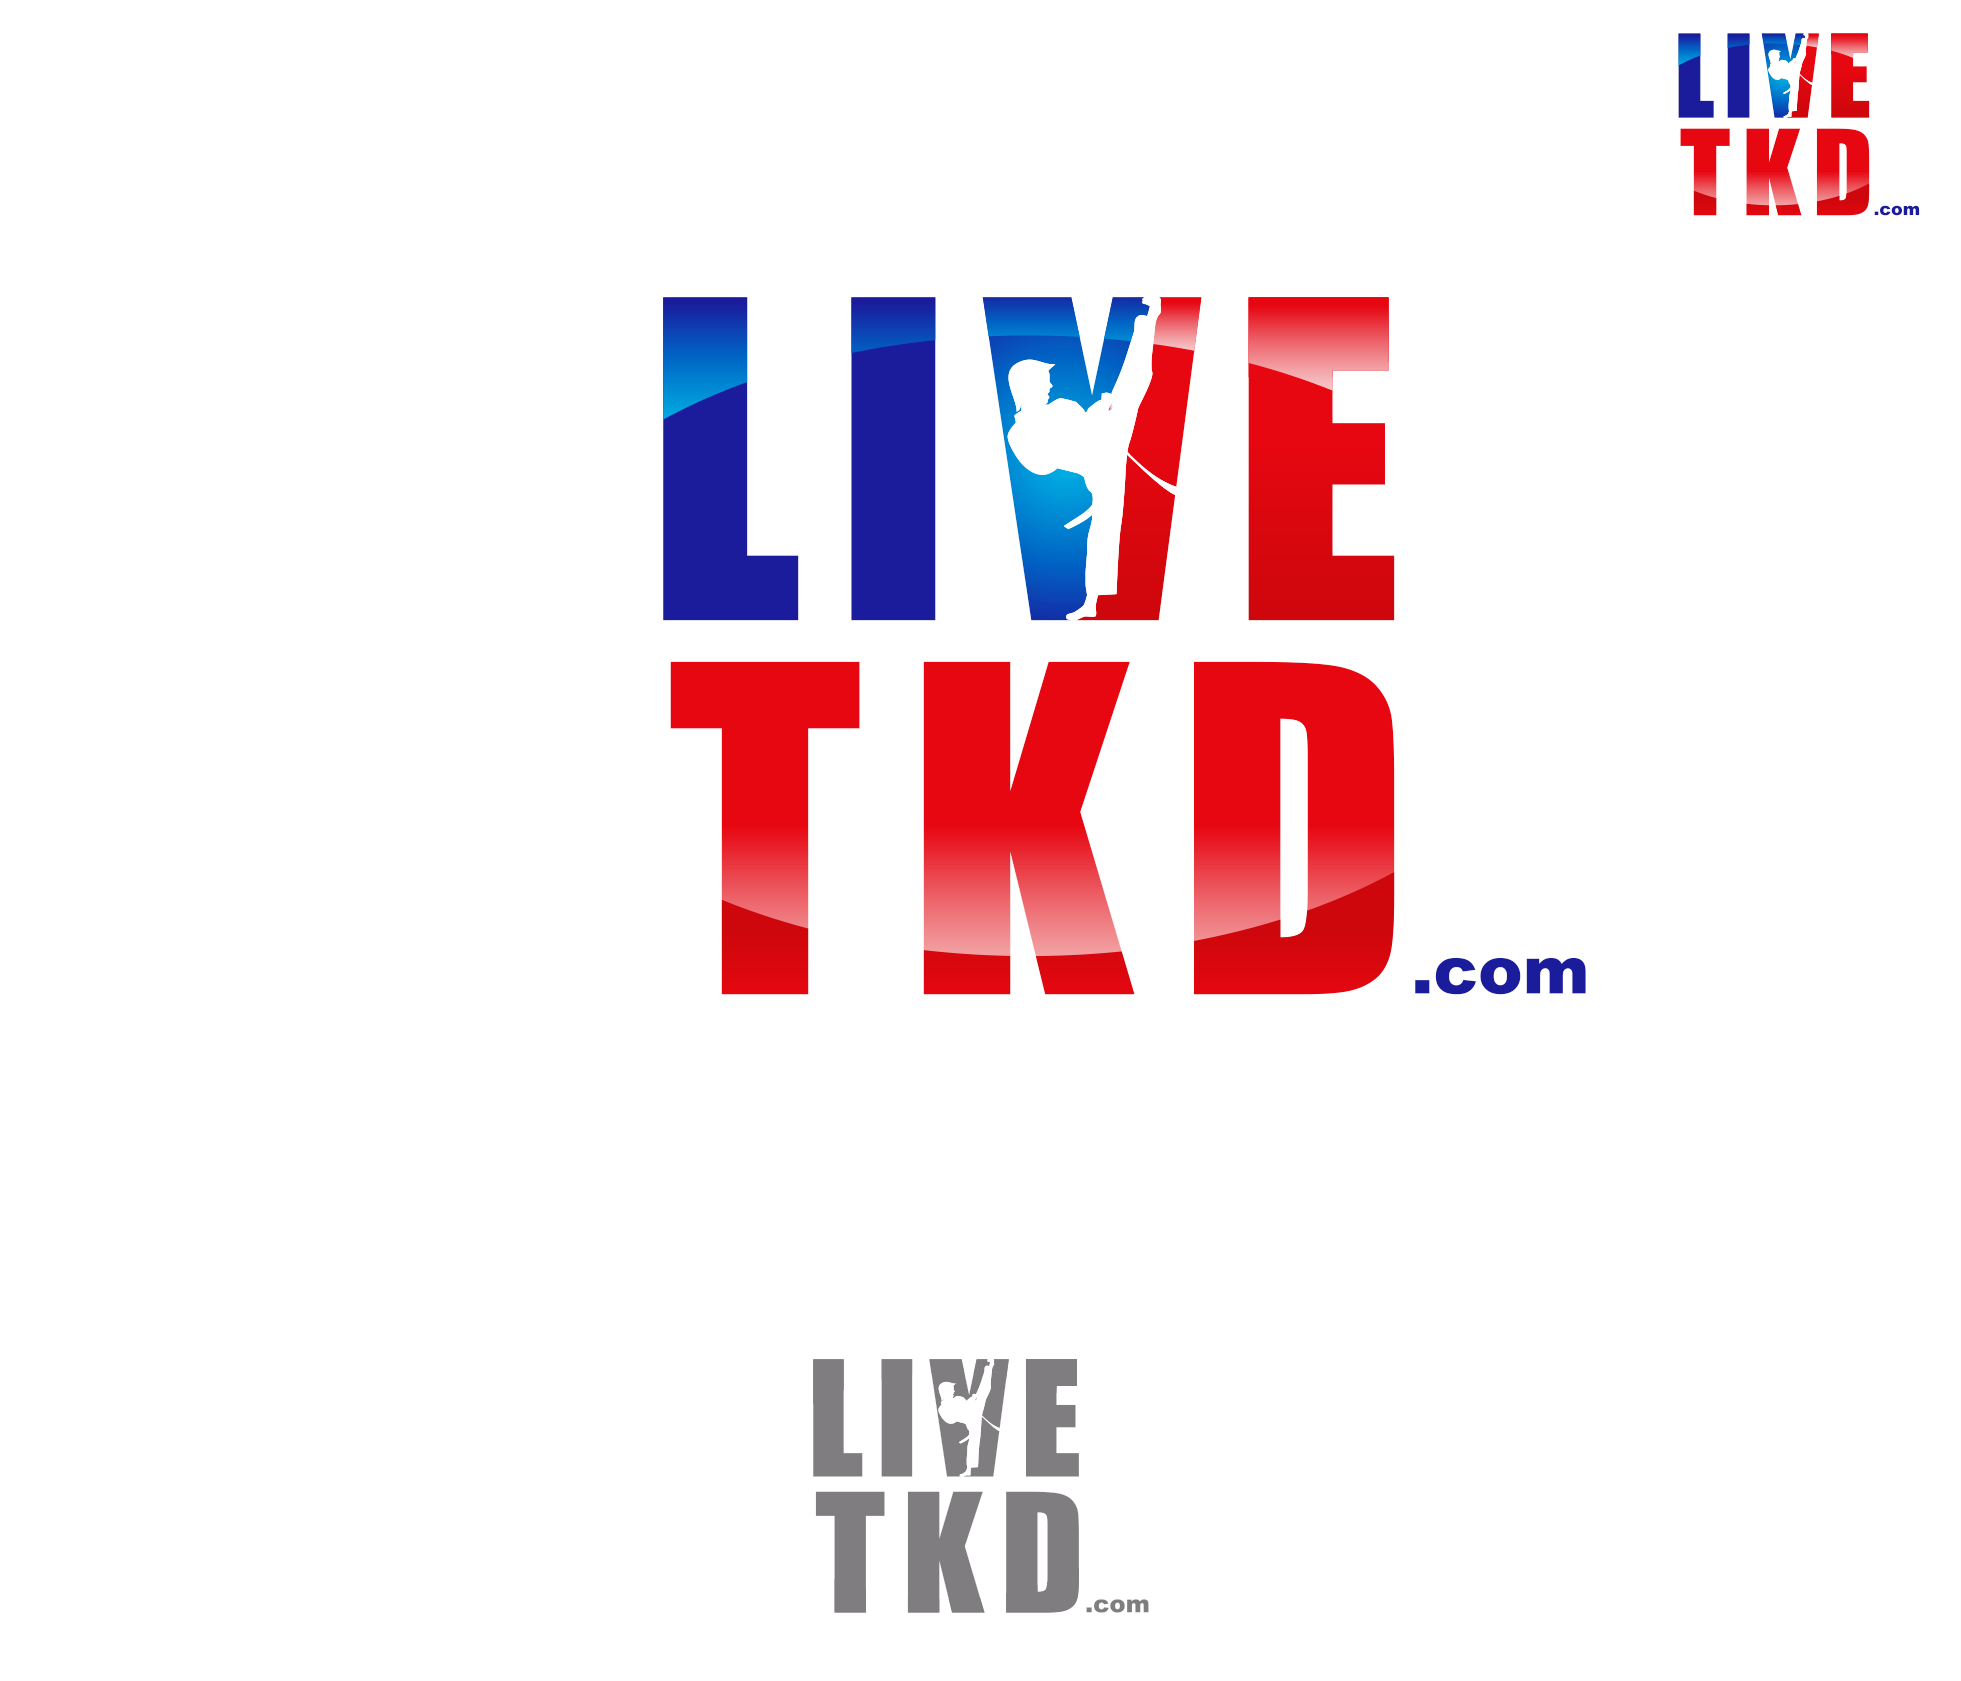 Logo Design by Armada Jamaluddin - Entry No. 174 in the Logo Design Contest New Logo Design for LiveTKD.com.